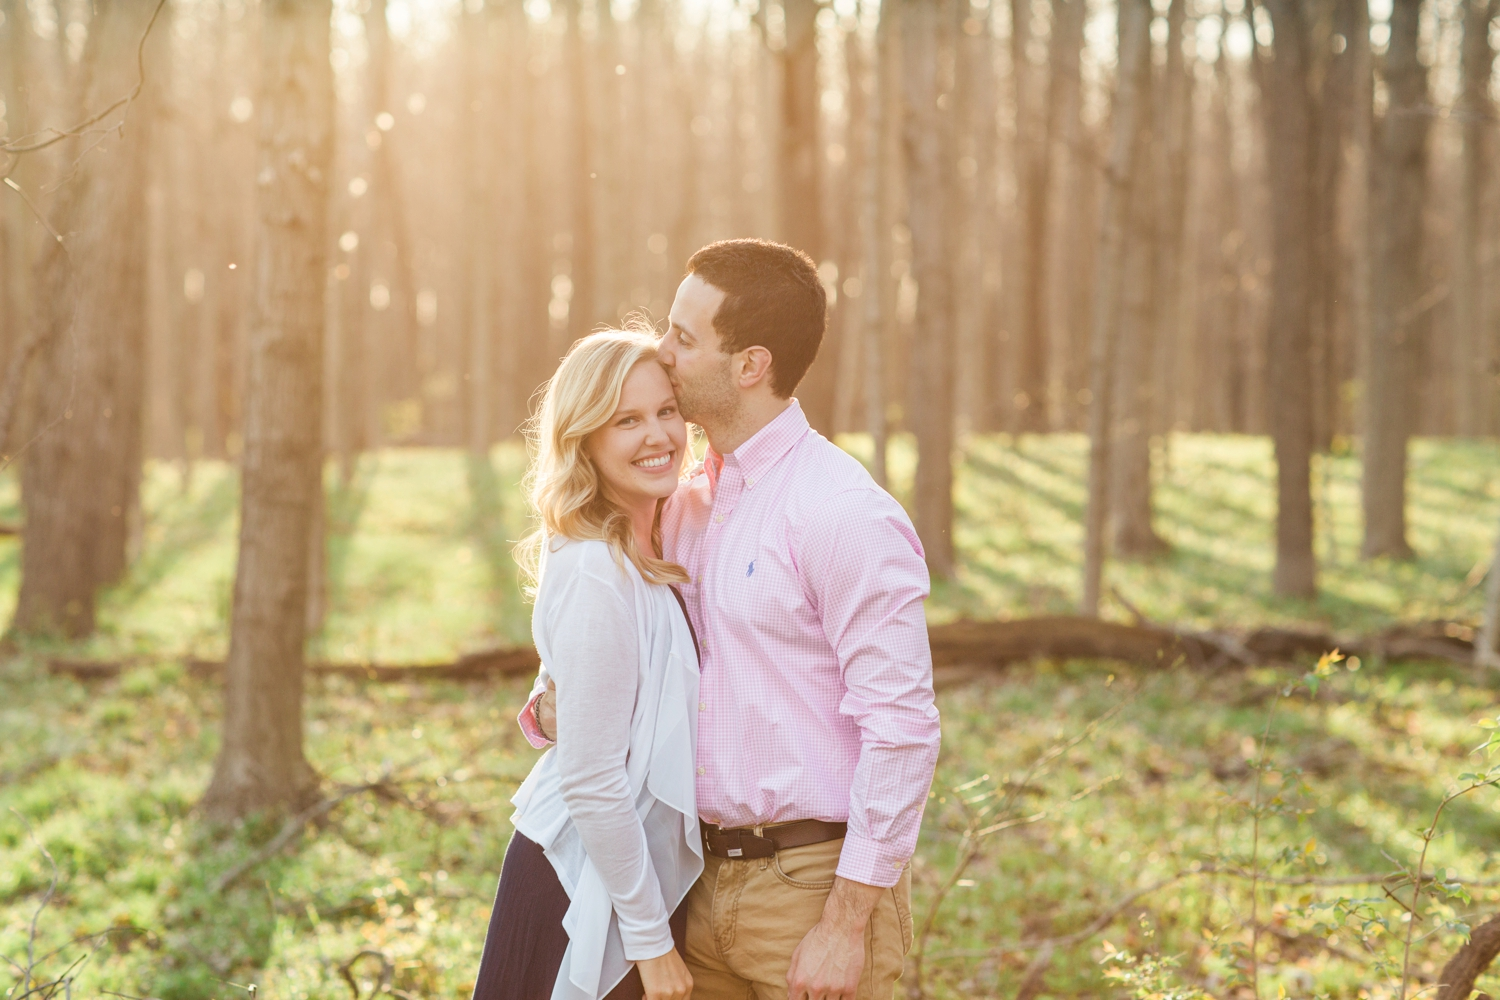 indianapolis_wedding_photographer_golden_hour_engagement_chloe_luka_photography_6108.jpg